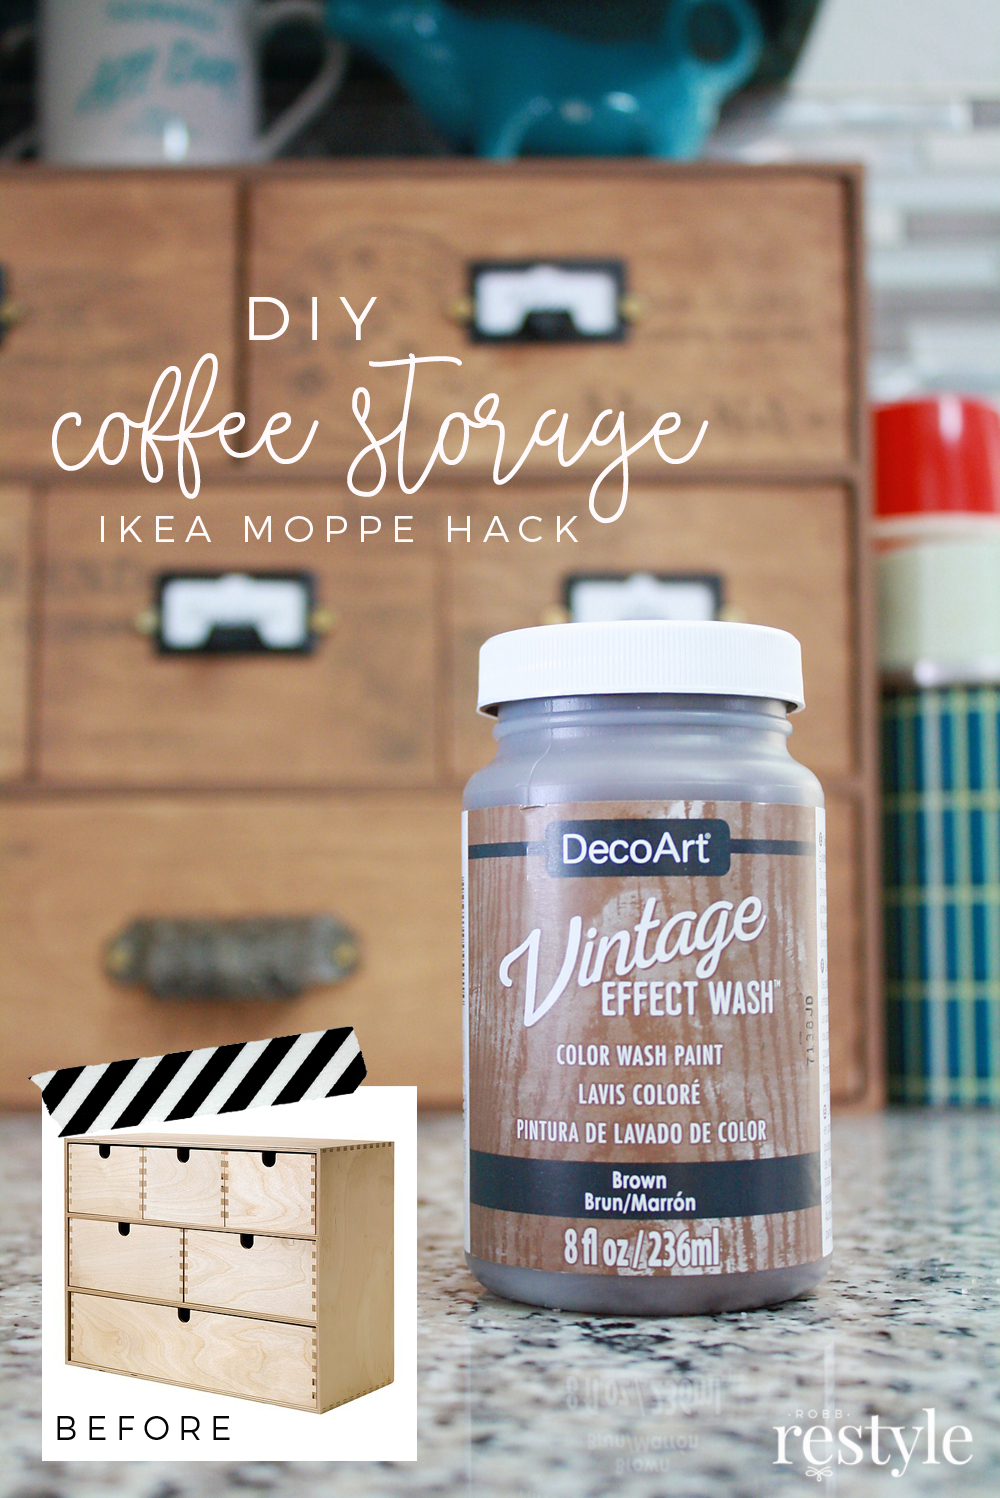 DIY Coffee Storage Ikea Moppe Hack